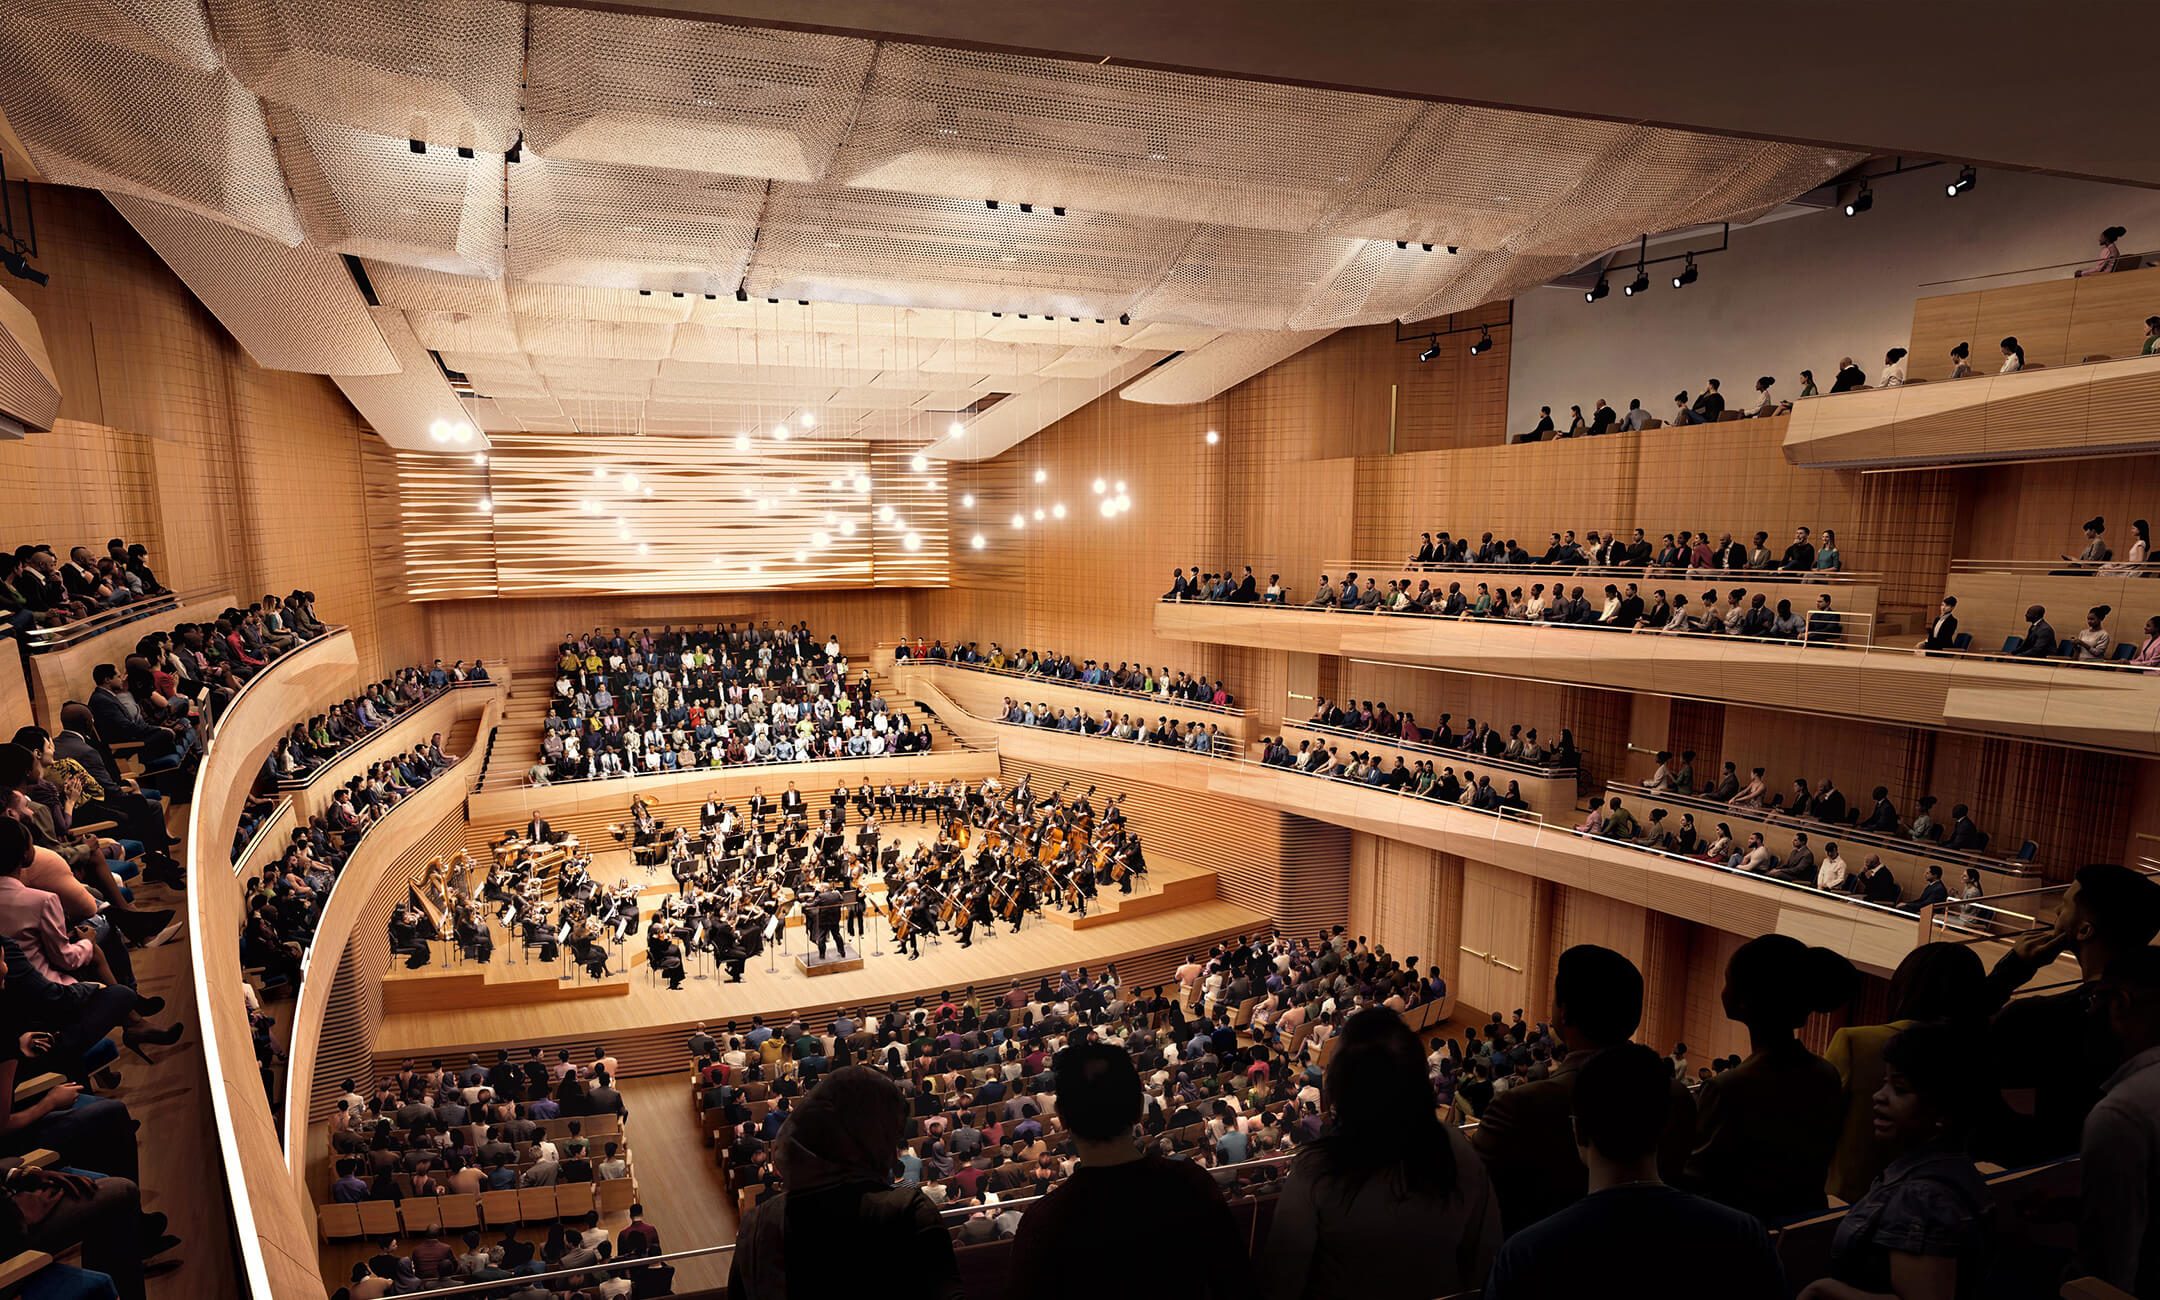 architectural rendering of the new David Geffen Hall in New York City with orchestra and audience